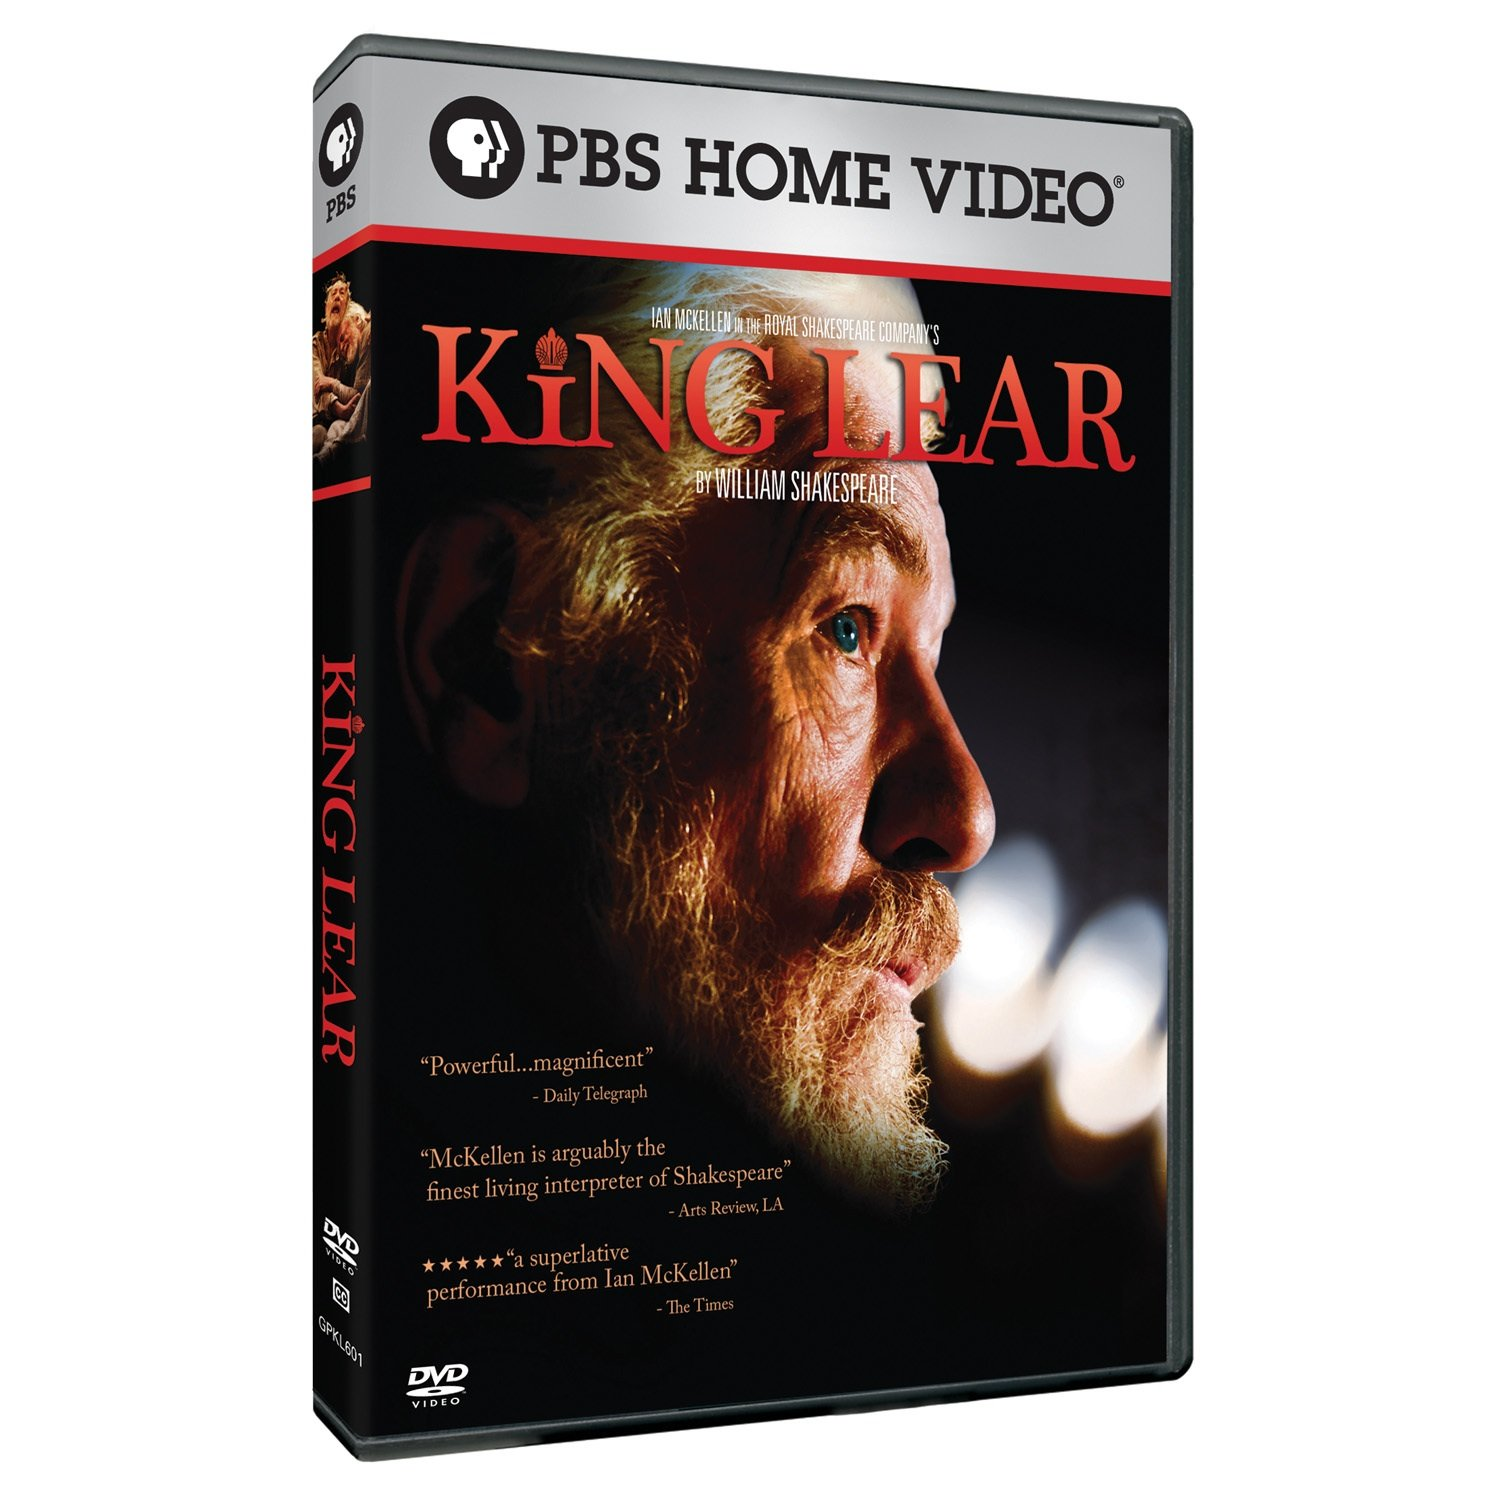 King Lear (Royal Shakespeare Company) by PBS Home Video